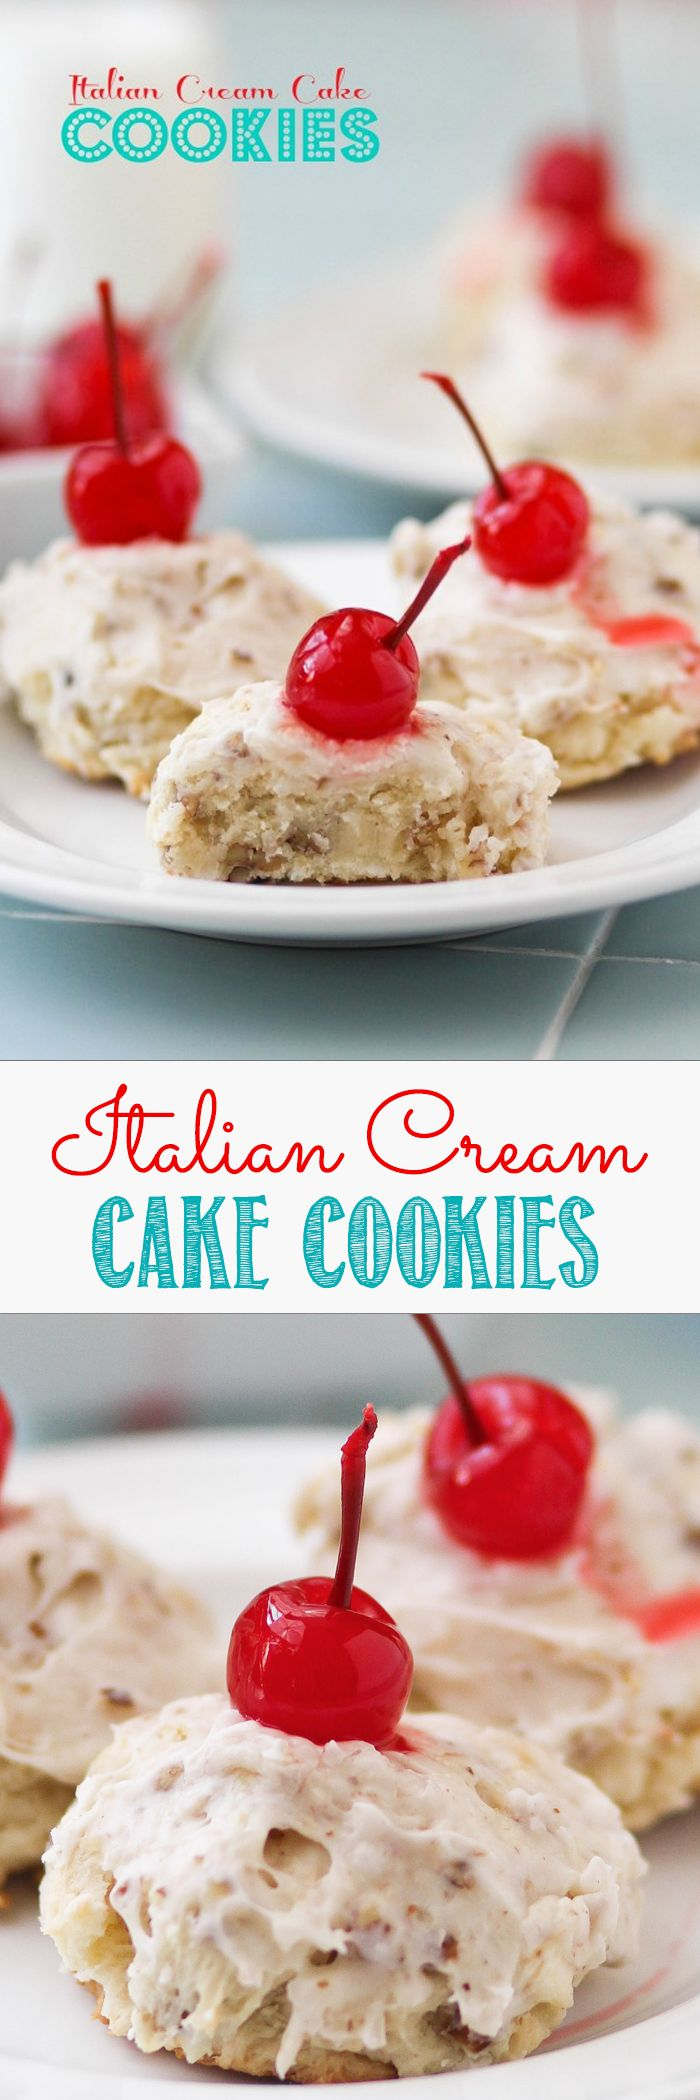 ITALIAN CREAM CAKE COOKIES -- soft little bites full of coconut and pecans and finished with a cream cheese glaze. The glaze sinks in to the top of the cookies making them so moist and yummy.